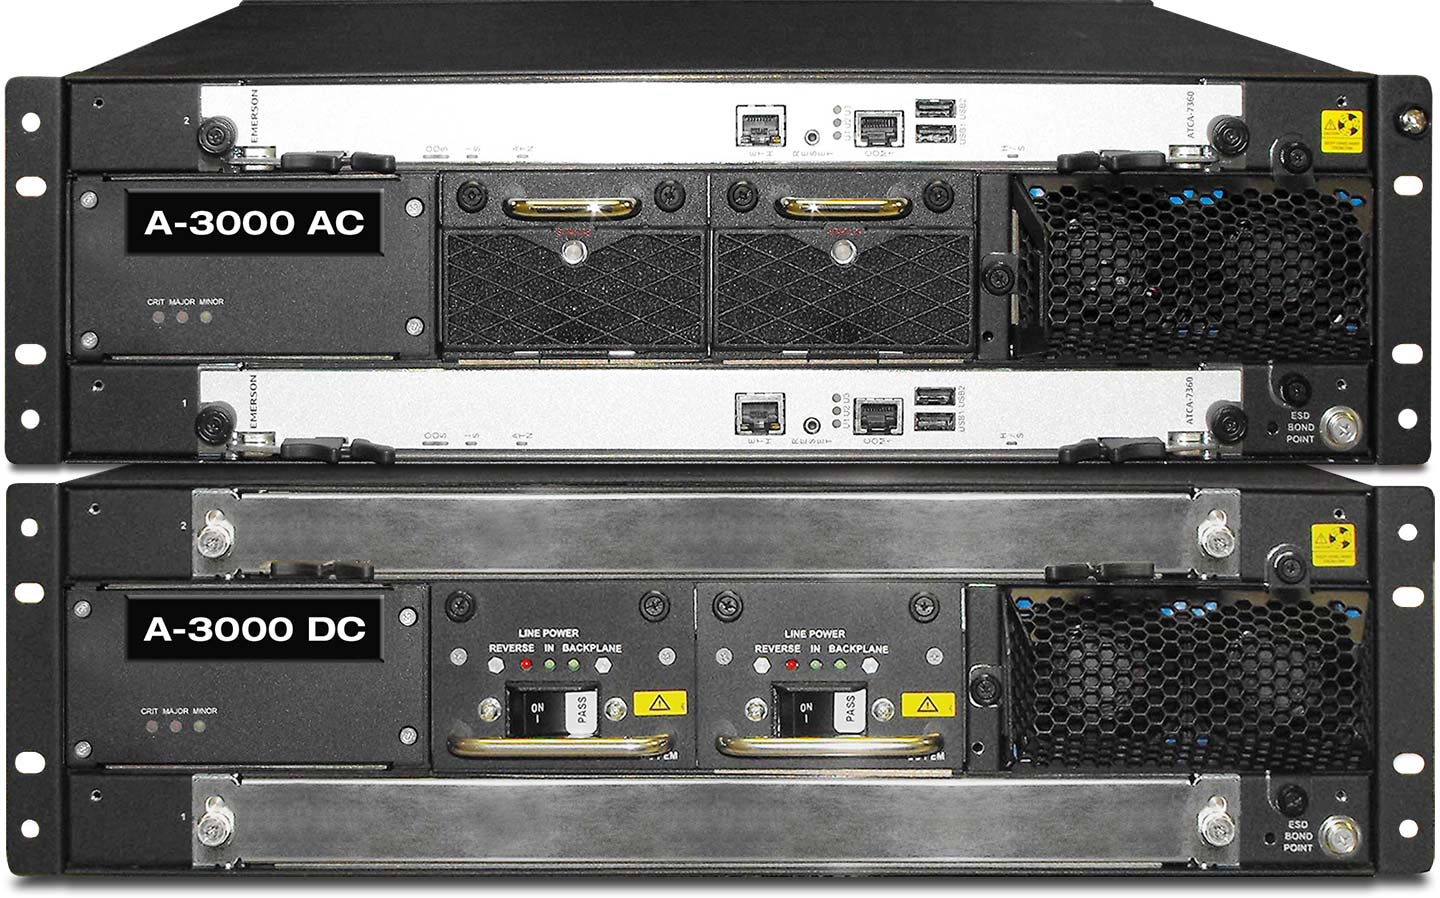 A-3000 – Enterprise Data Center & ACTA Platform